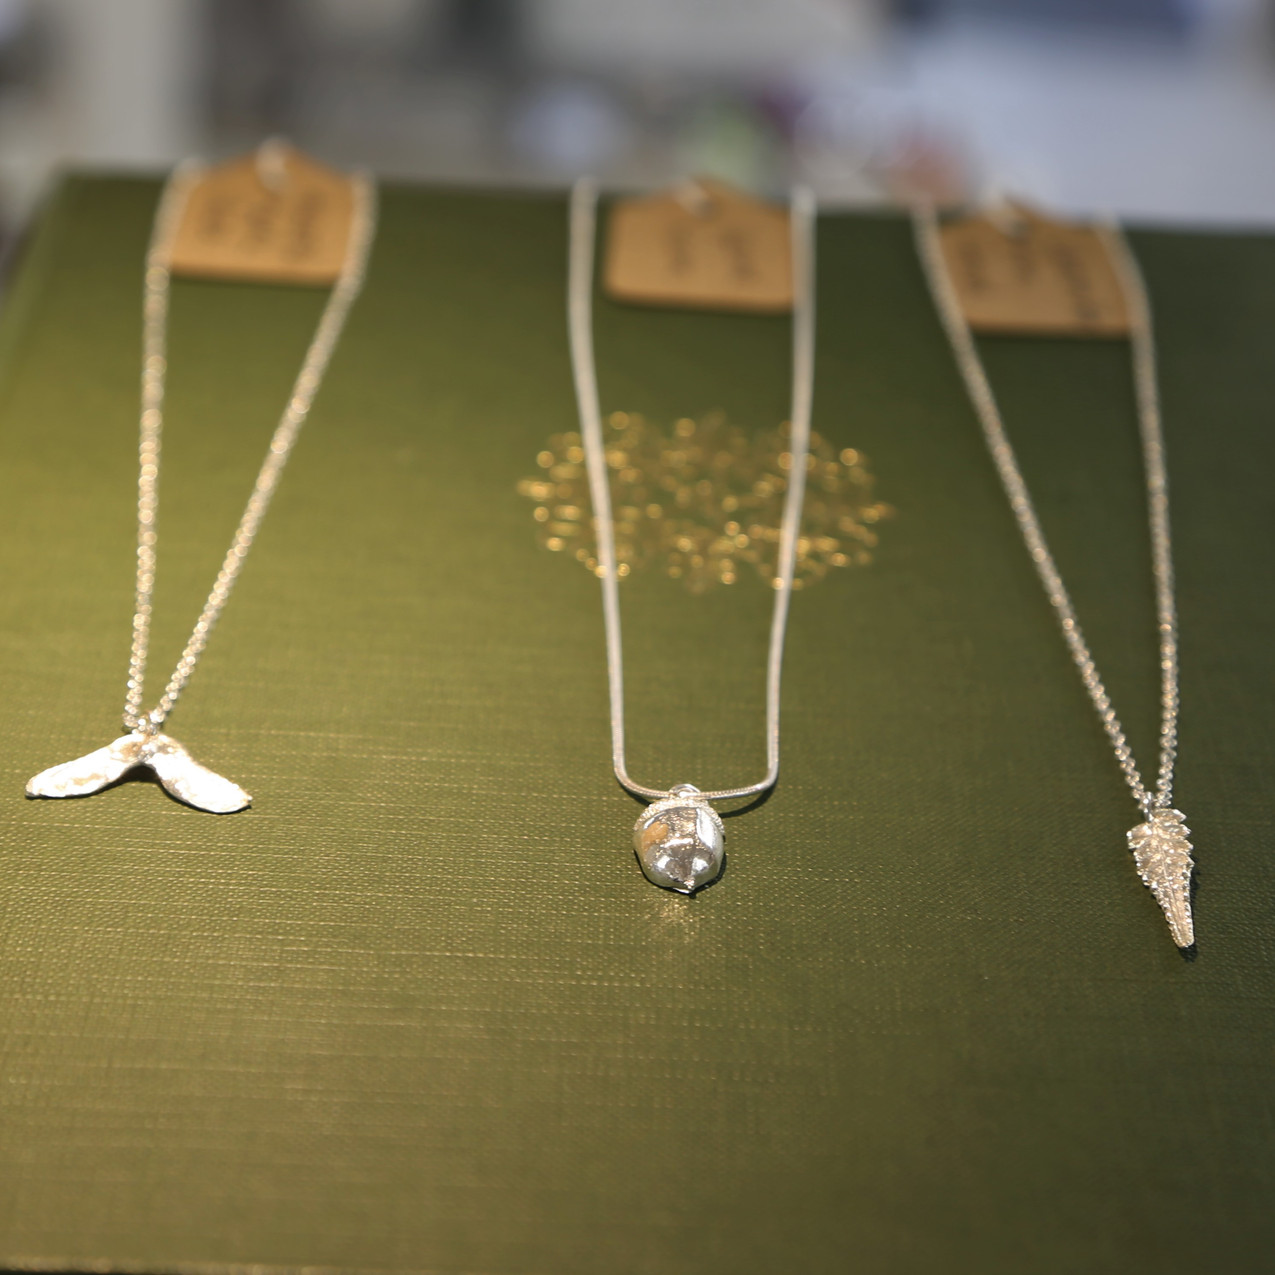 Silver necklaces at Inspirations